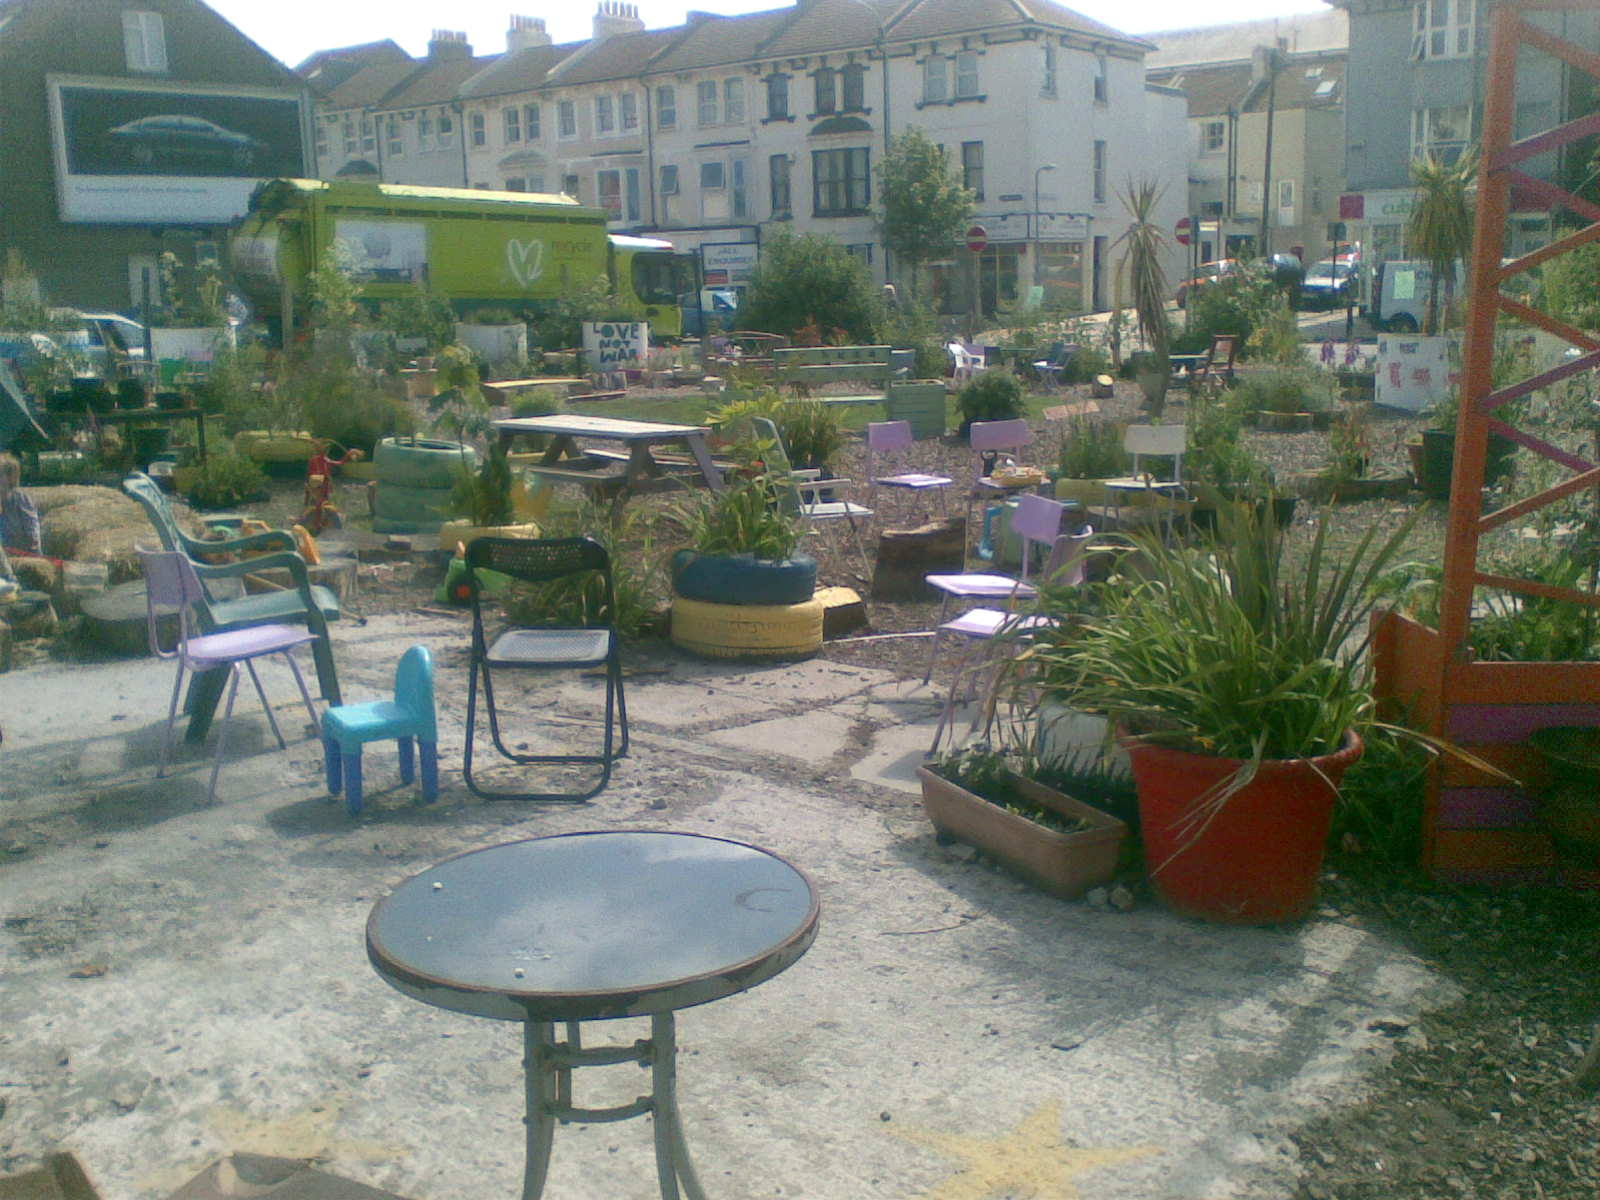 Lewes Road Community Garden in June sunshine